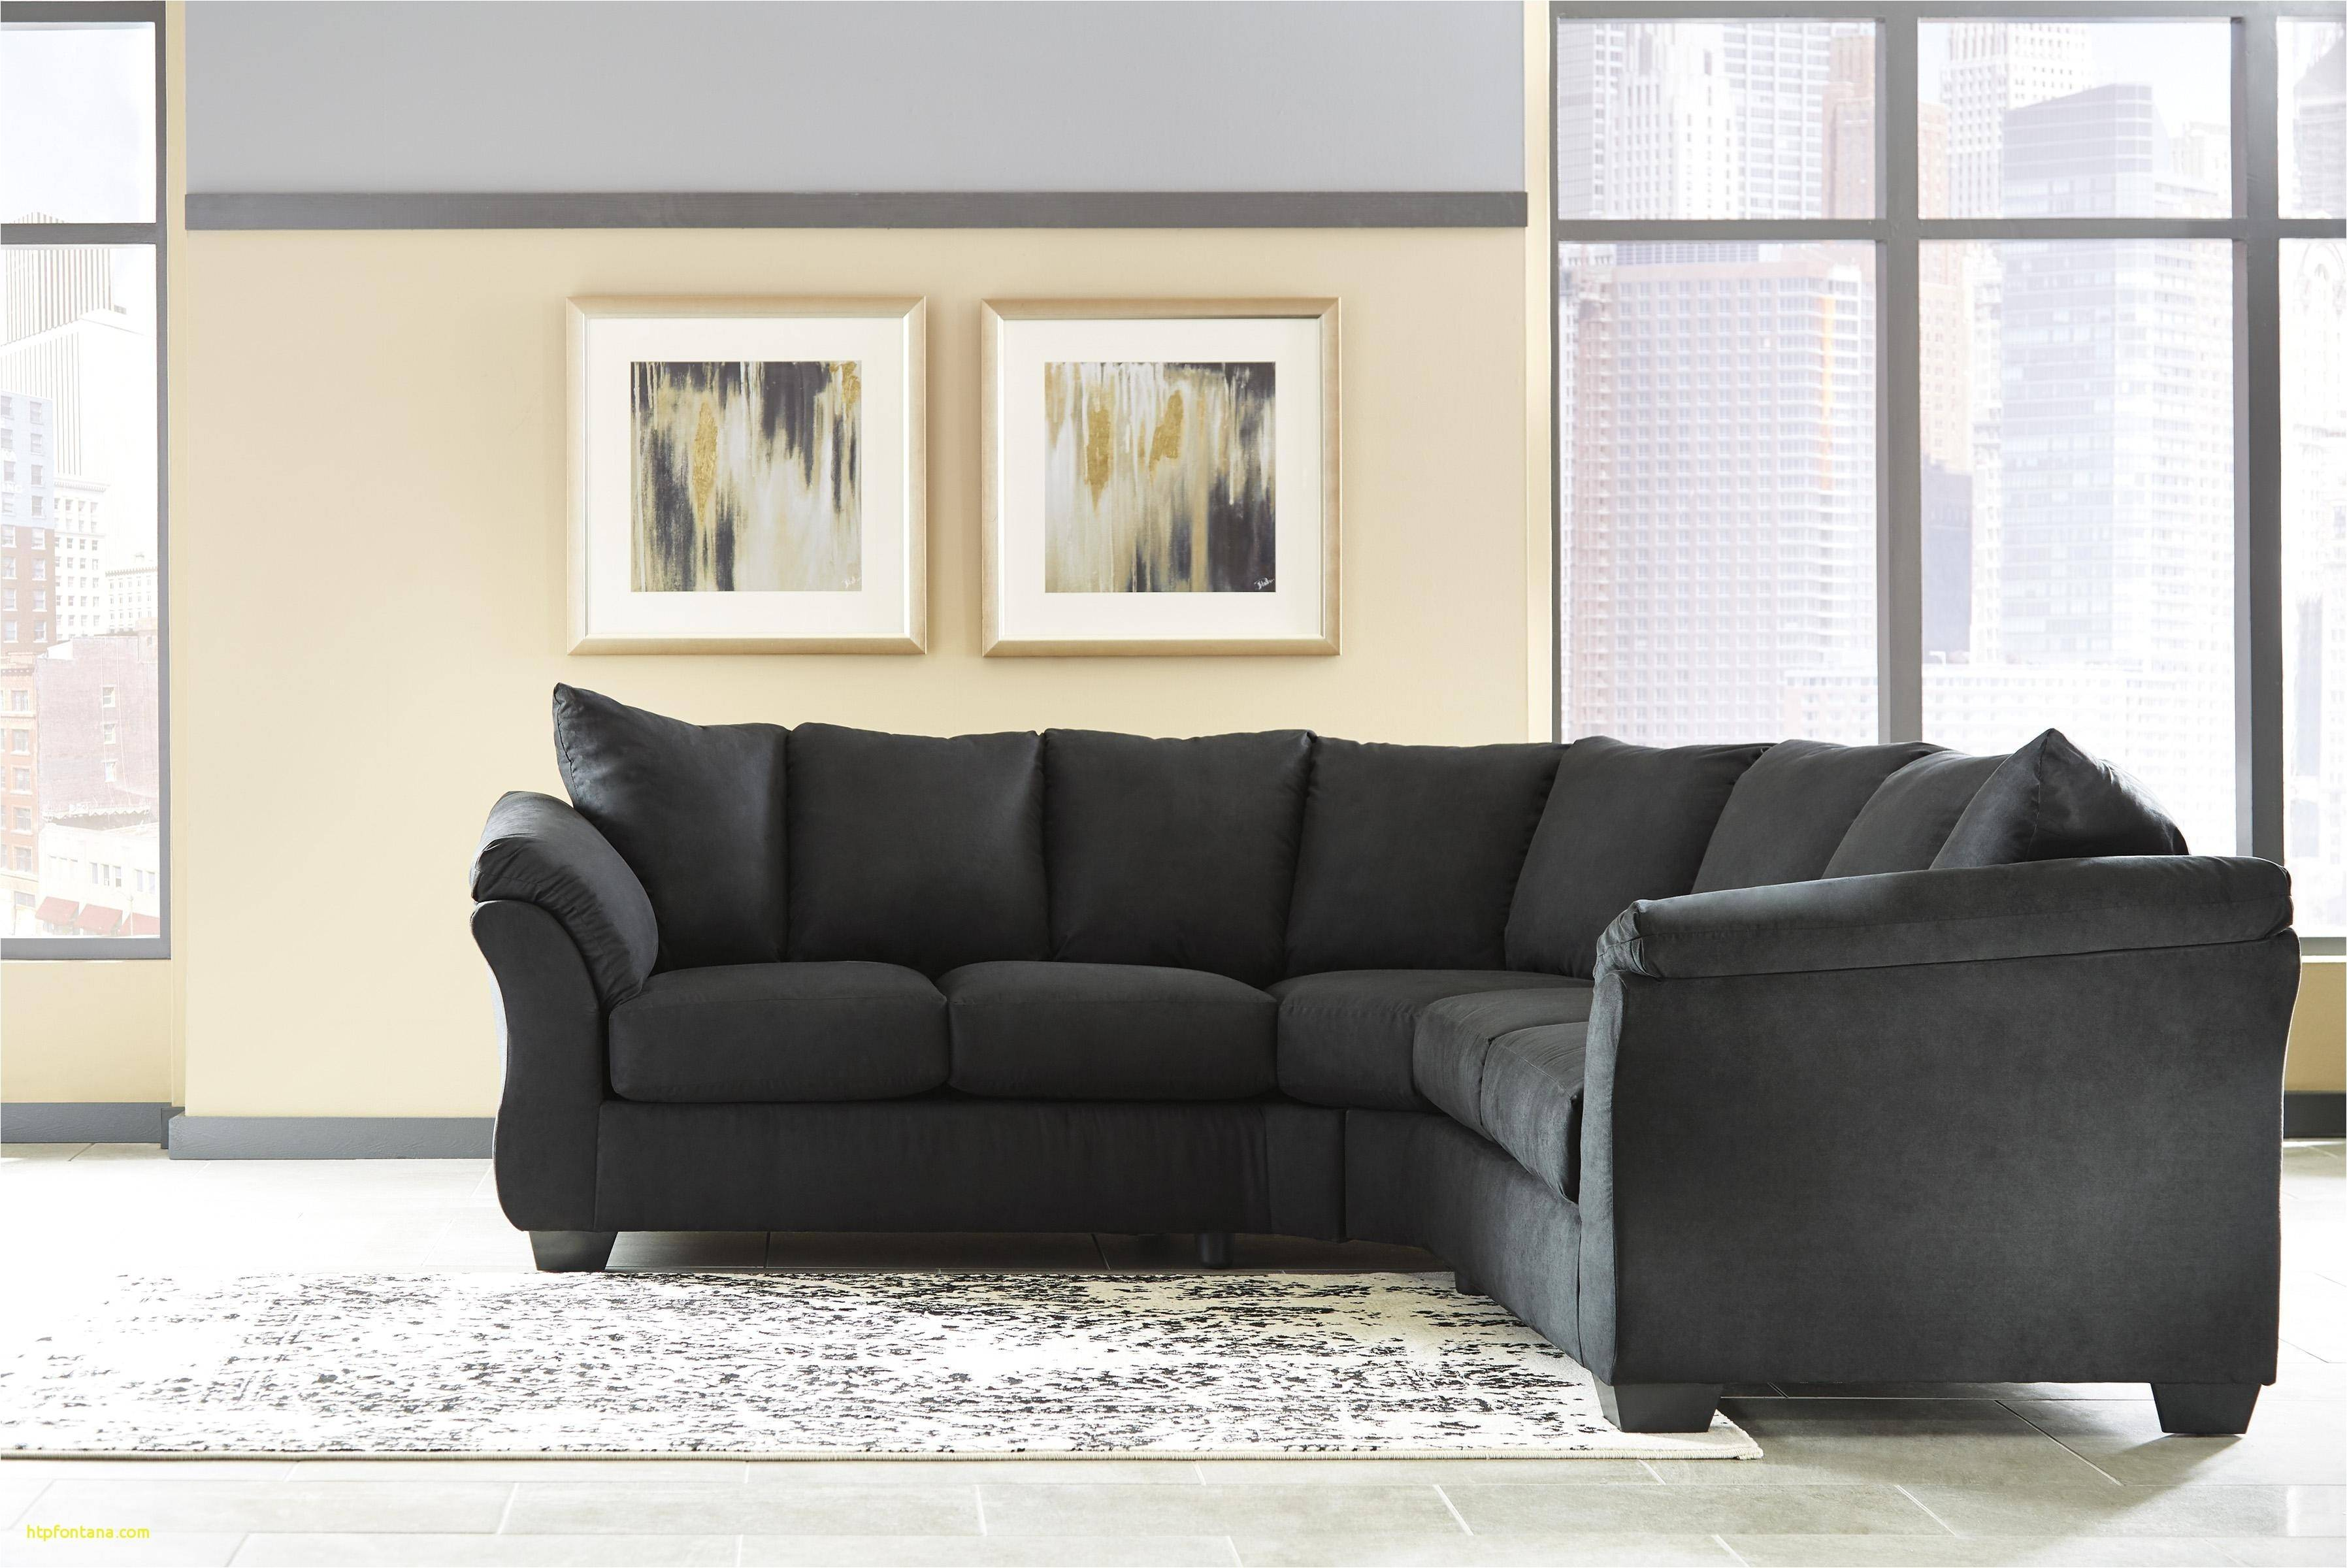 modern sectional sofa for small spaces stunning gray leather living room sets with couch chair sofa grey of modern sectional sofa for small spaces